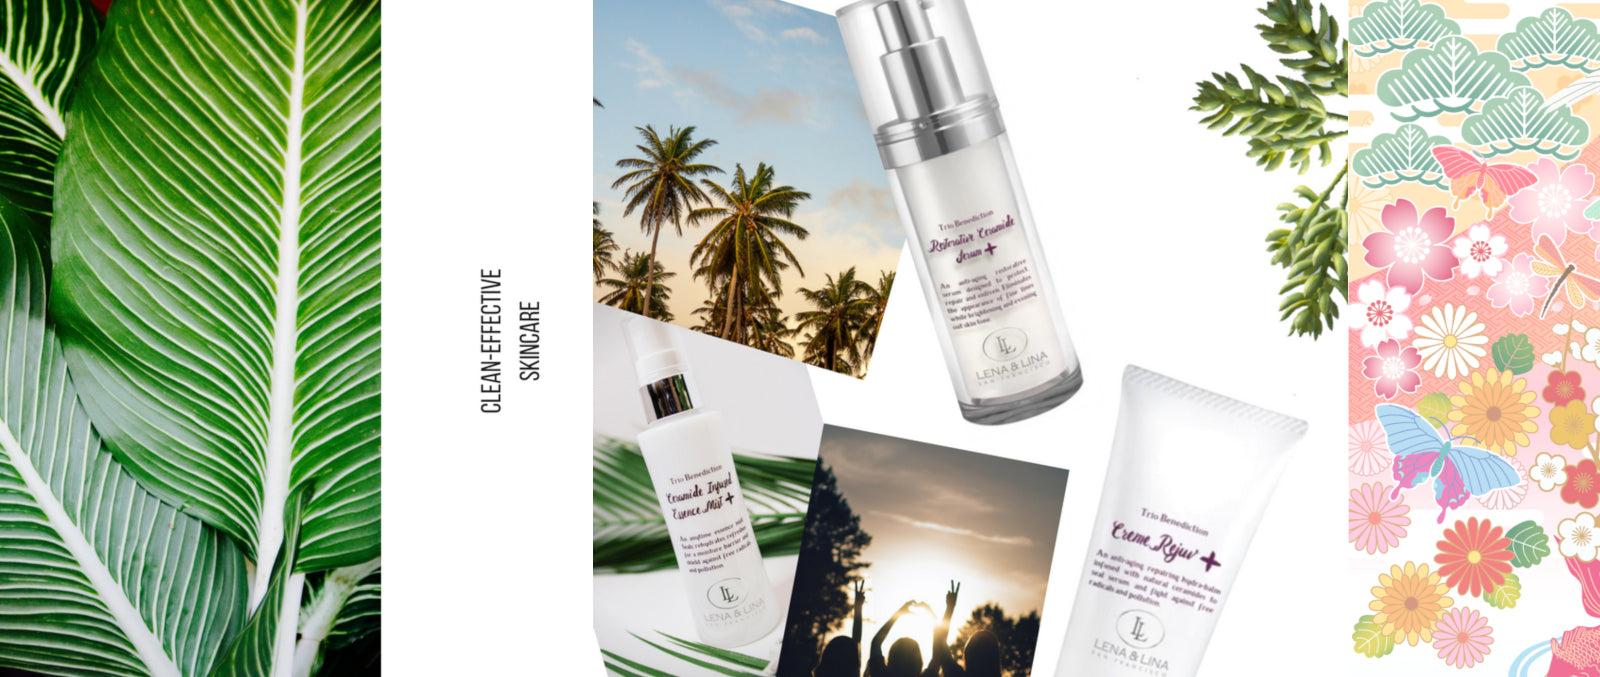 Lena & Lina San Francisco Premium Japanese Skincare Collection - Hydrating, Brightening & Age-Defying - Effective & Luxurious Skin care | JBEAUTY